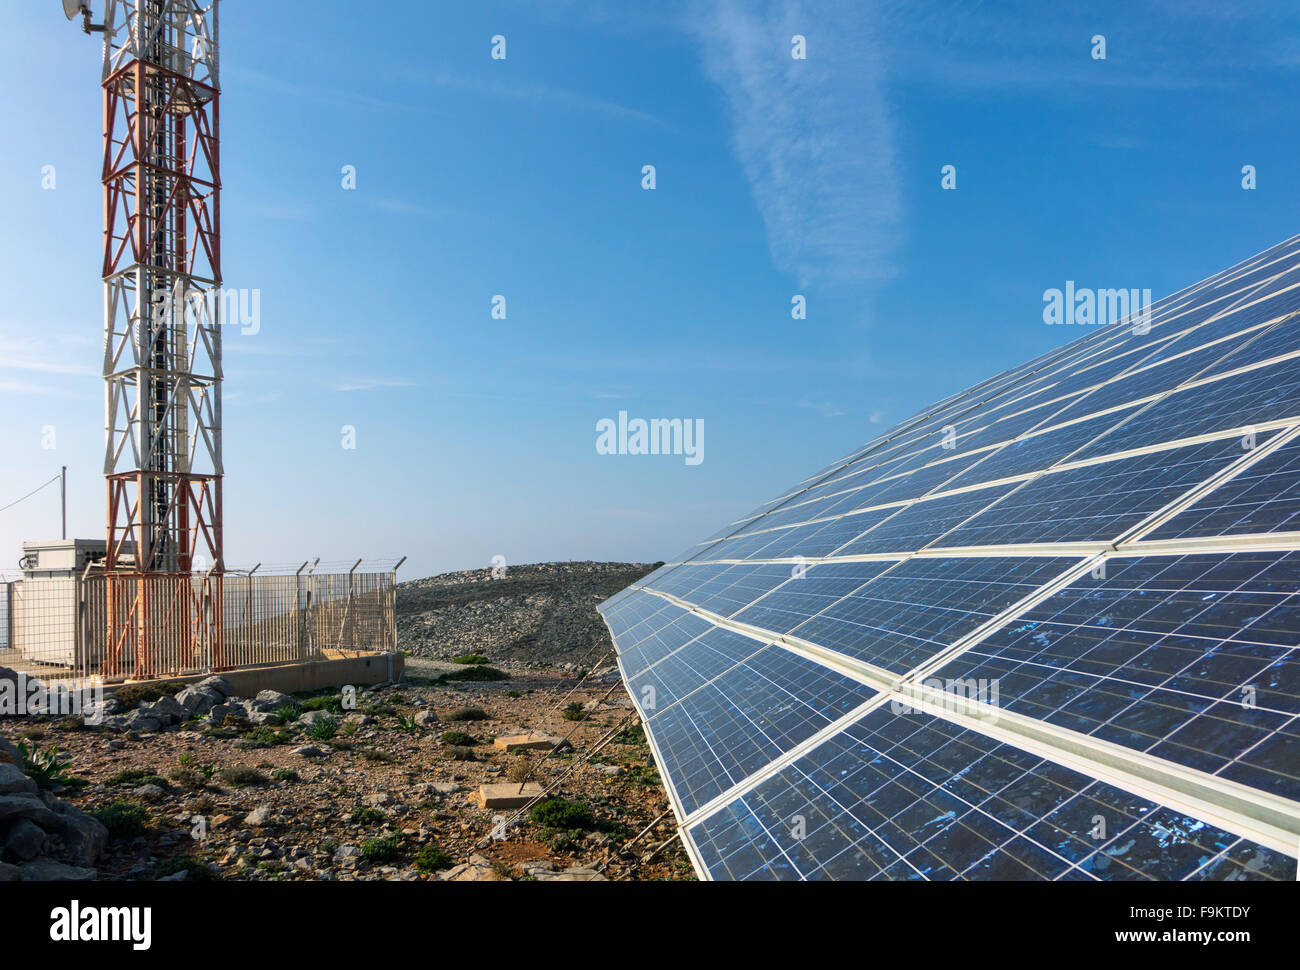 Solar panels and mobile phone mast against blue sky - Stock Image